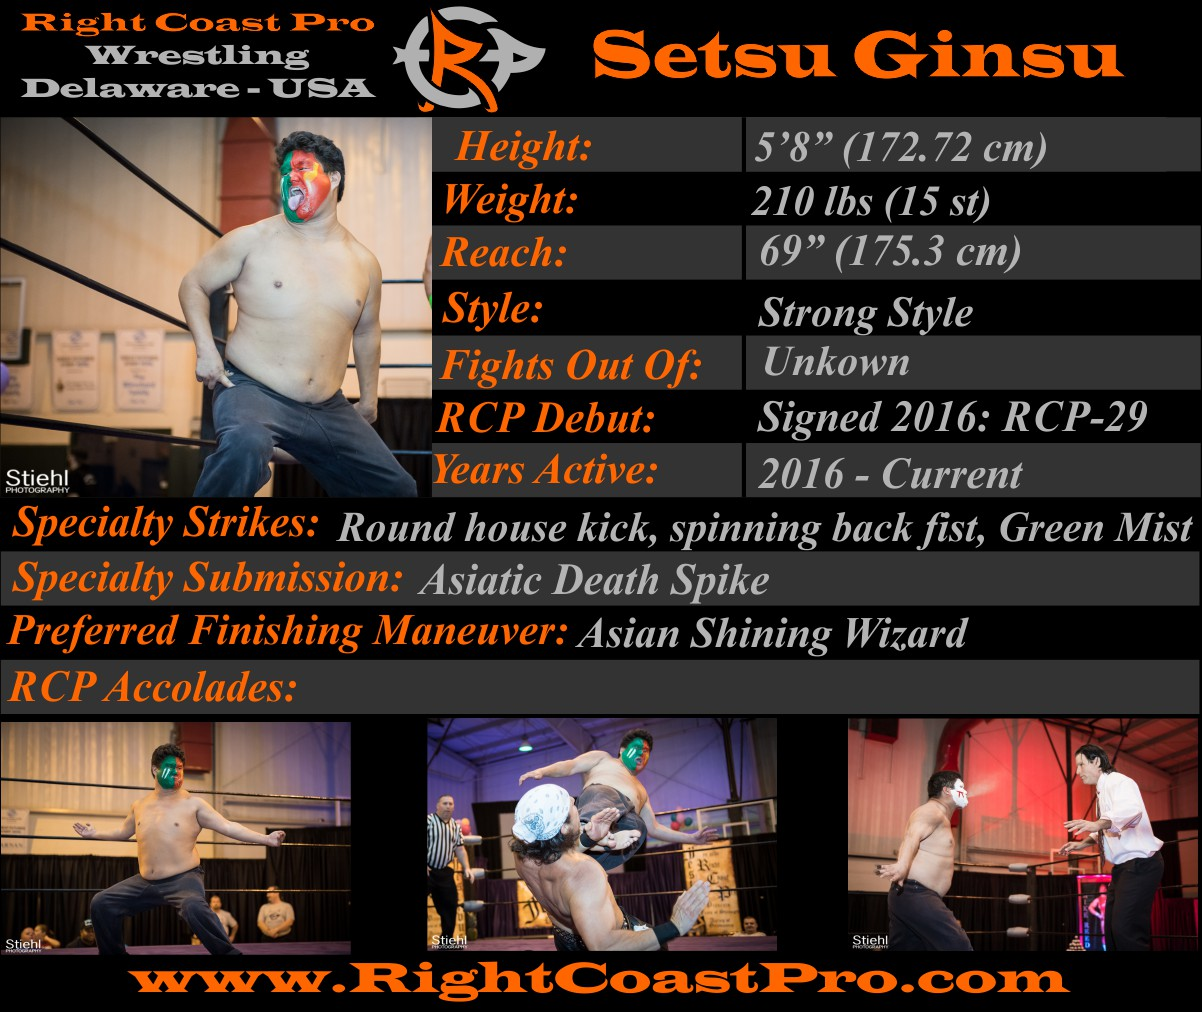 Setsu Ginsu profile RightCoast Pro Wrestling Delaware